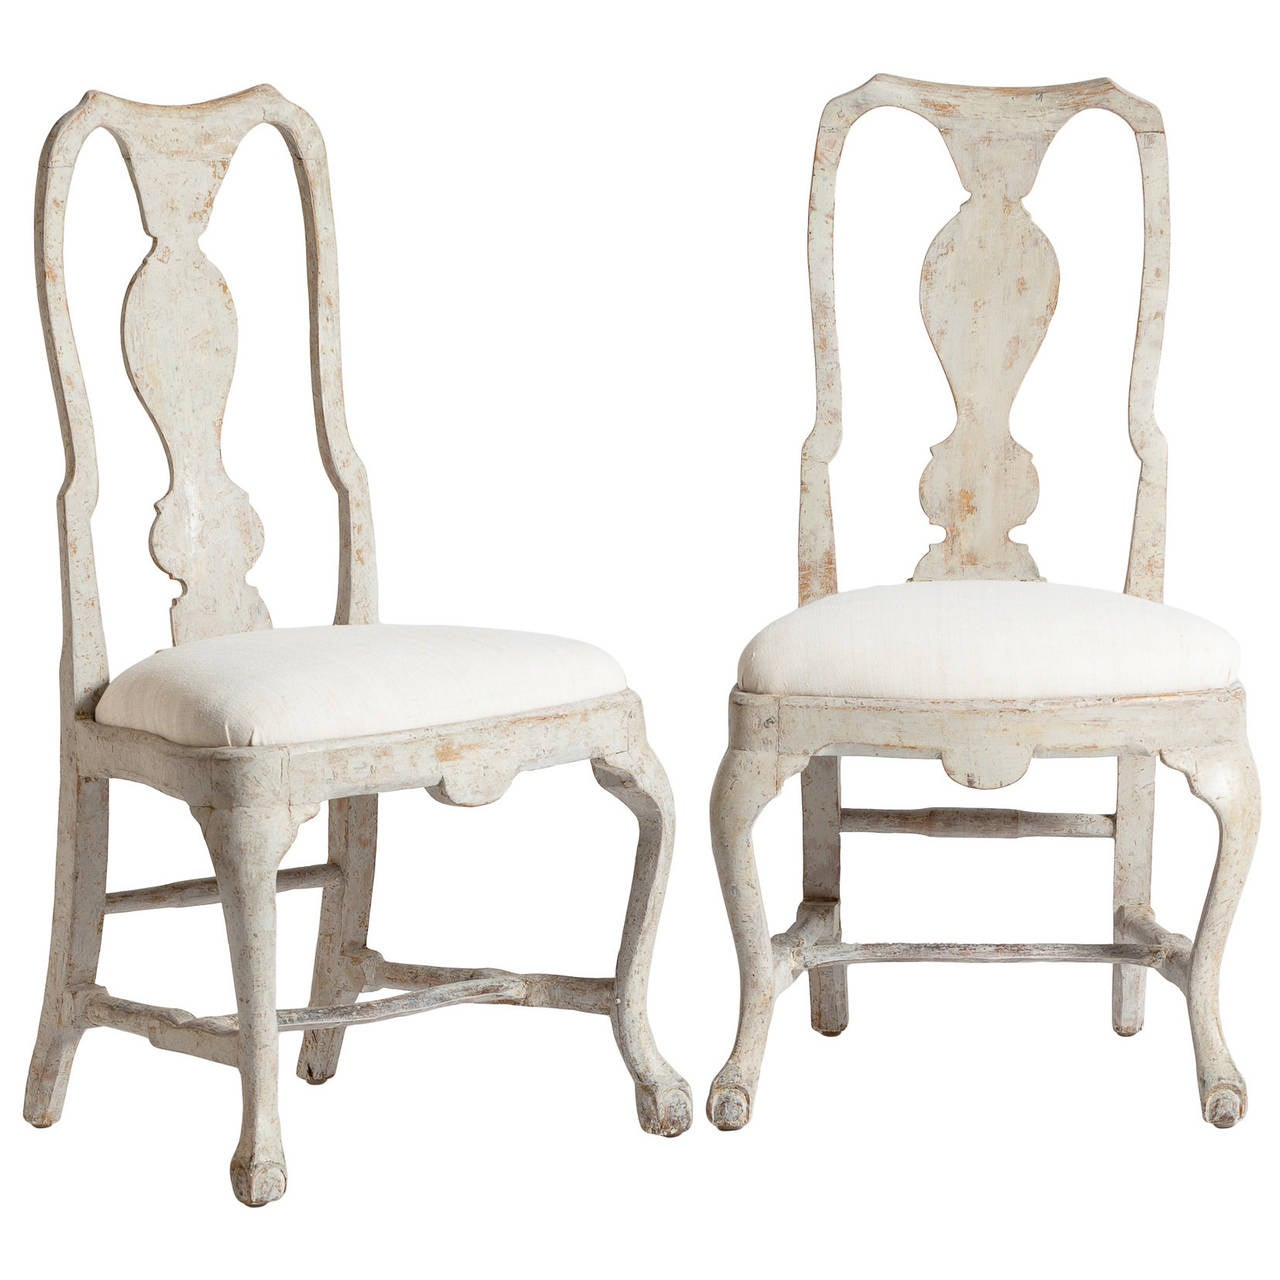 Pair of Antique Swedish, Rococo Side Chairs with Carved Ball and Claw Feet 1 - Pair Of Antique Swedish, Rococo Side Chairs With Carved Ball And